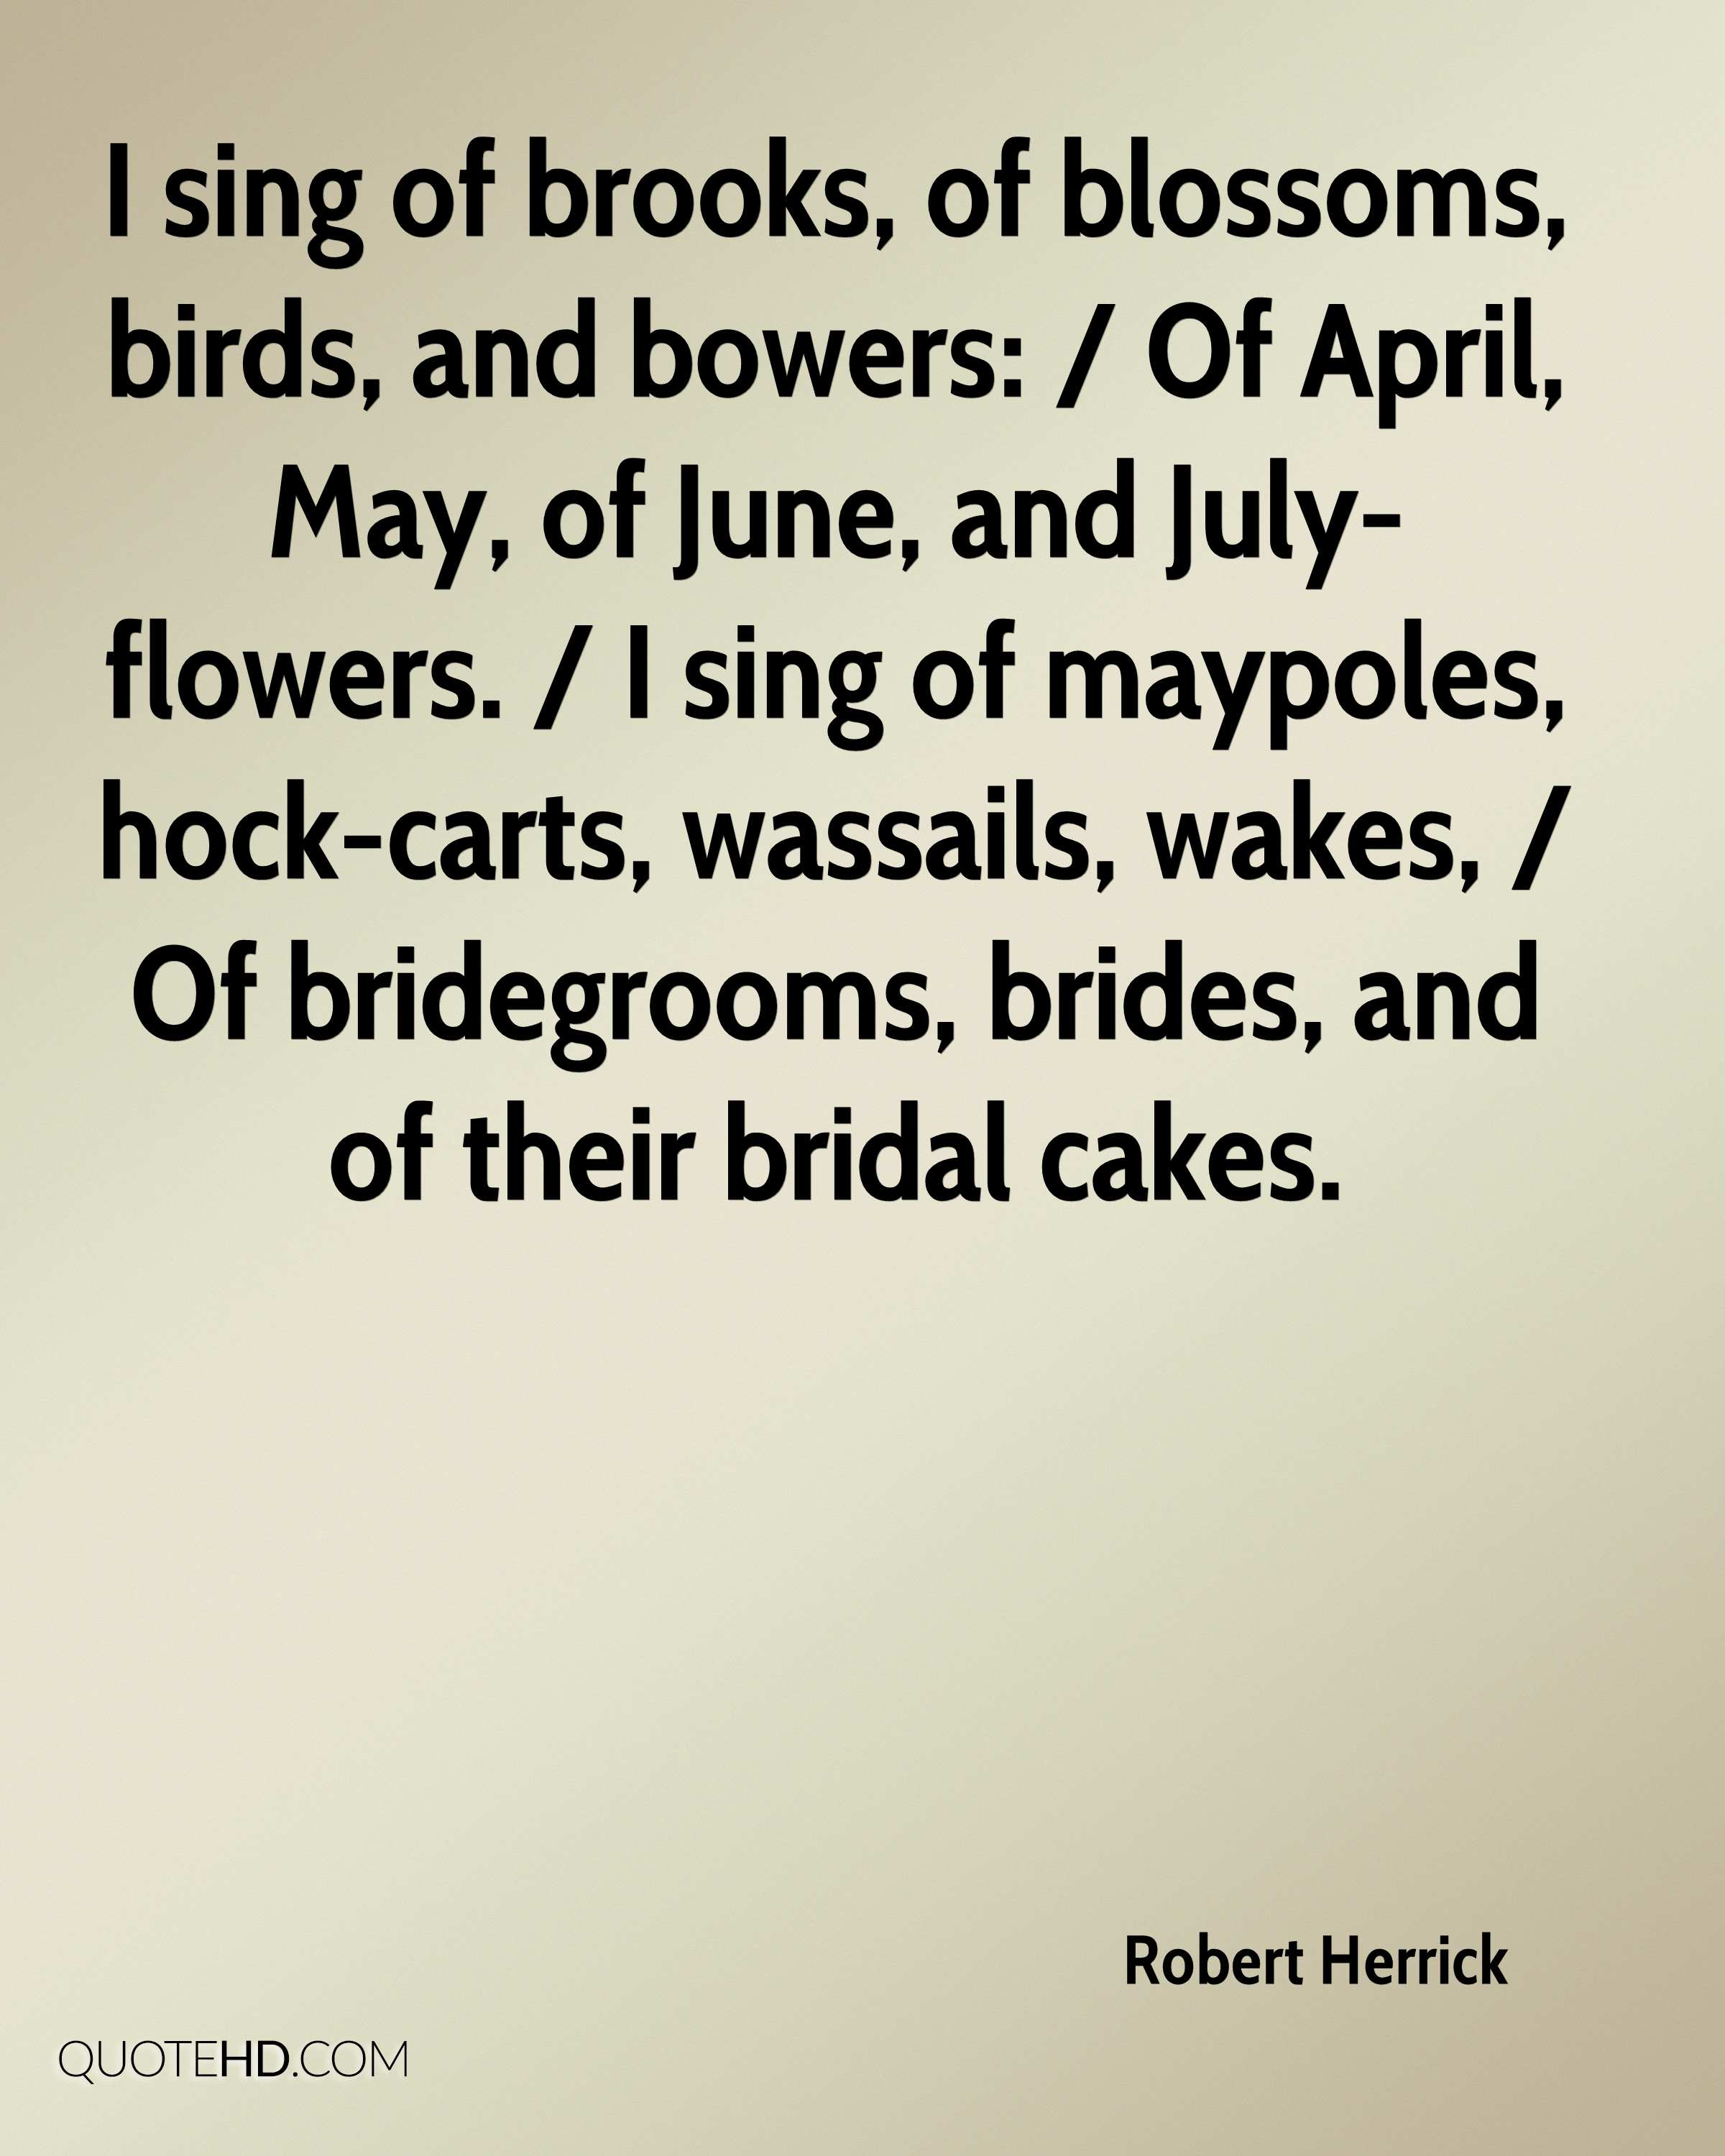 I sing of brooks, of blossoms, birds, and bowers: / Of April, May, of June, and July-flowers. / I sing of maypoles, hock-carts, wassails, wakes, / Of bridegrooms, brides, and of their bridal cakes.